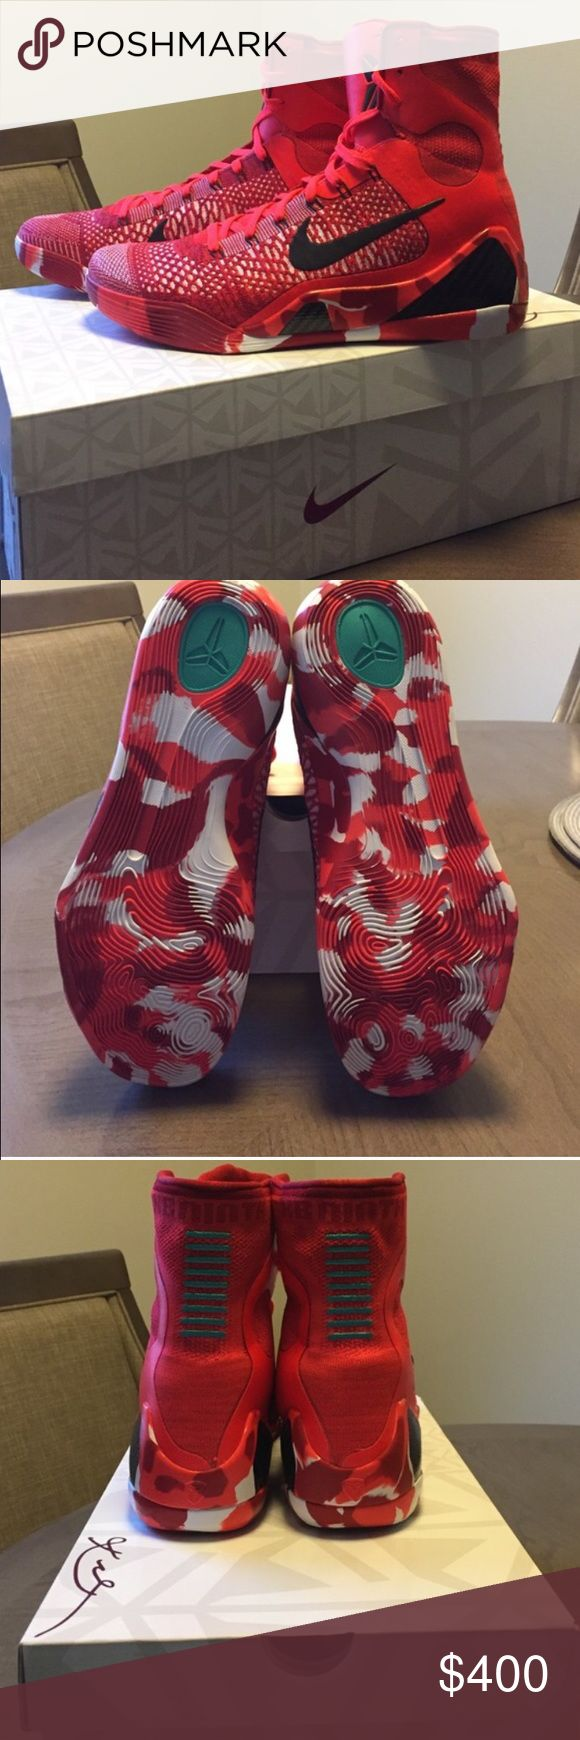 """BNIB Kobe 9 Elite high Christmas Kobe 9 Elite Christmas. Limited!!!!!! Brand new unworn. Please review photos. Comes with original box.  """"Dead stock condition""""      PLEASE READ: Instead of asking """"lowest?"""" Submit a offer. NO LOWBALLING. I don't trade & no offsite transactions. Don't even ask me about PayPal invoices - I don't do those either. Poshmark only. No Holds.  Nike Shoes Sneakers"""